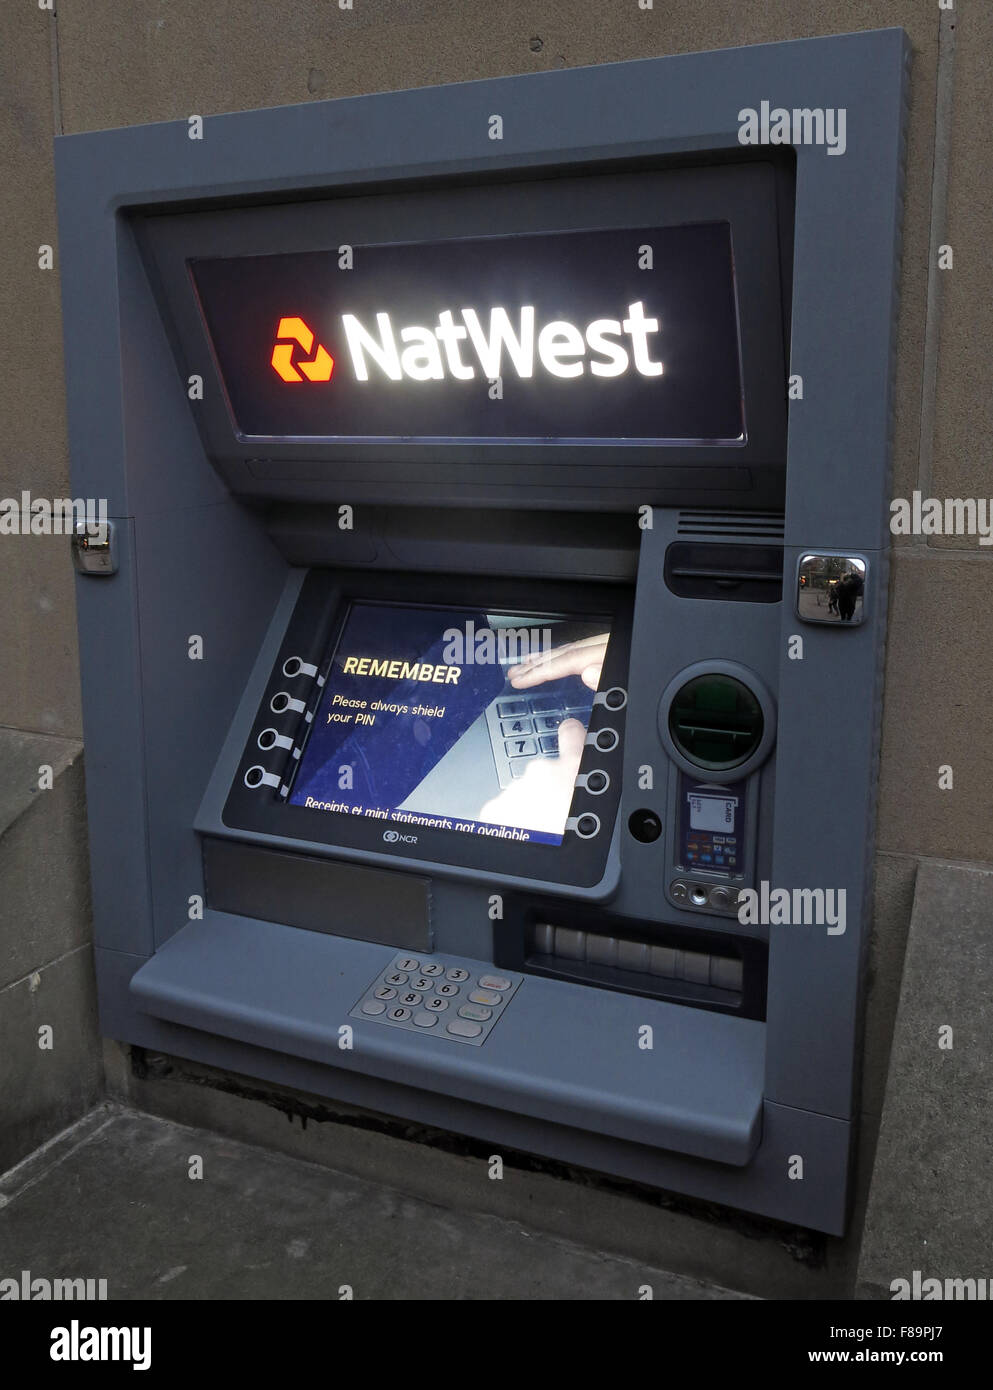 English,British,automated,teller,cashline,cash,notes,dispensing,PIN,security,safe,crime,cashpoint,Cheshire,England,UK,grey,gray,banking,banks,bankers,cash,economy,inflation,money,bank machine,bank machines,British economy,cash machine,cash machines,cash point,high street spending,GoTonySmith,banking,banks,bankers,cash,economy,inflation,money,natwest,spending,Buy Pictures of,Buy Images Of,bank machine,bank machines,British economy,cash machine,cash machines,cash point,high street spending,nat west,natwest atm,natwest bank,natwest cash machine,natwest cash machines,natwest cash point,natwest cashpoint